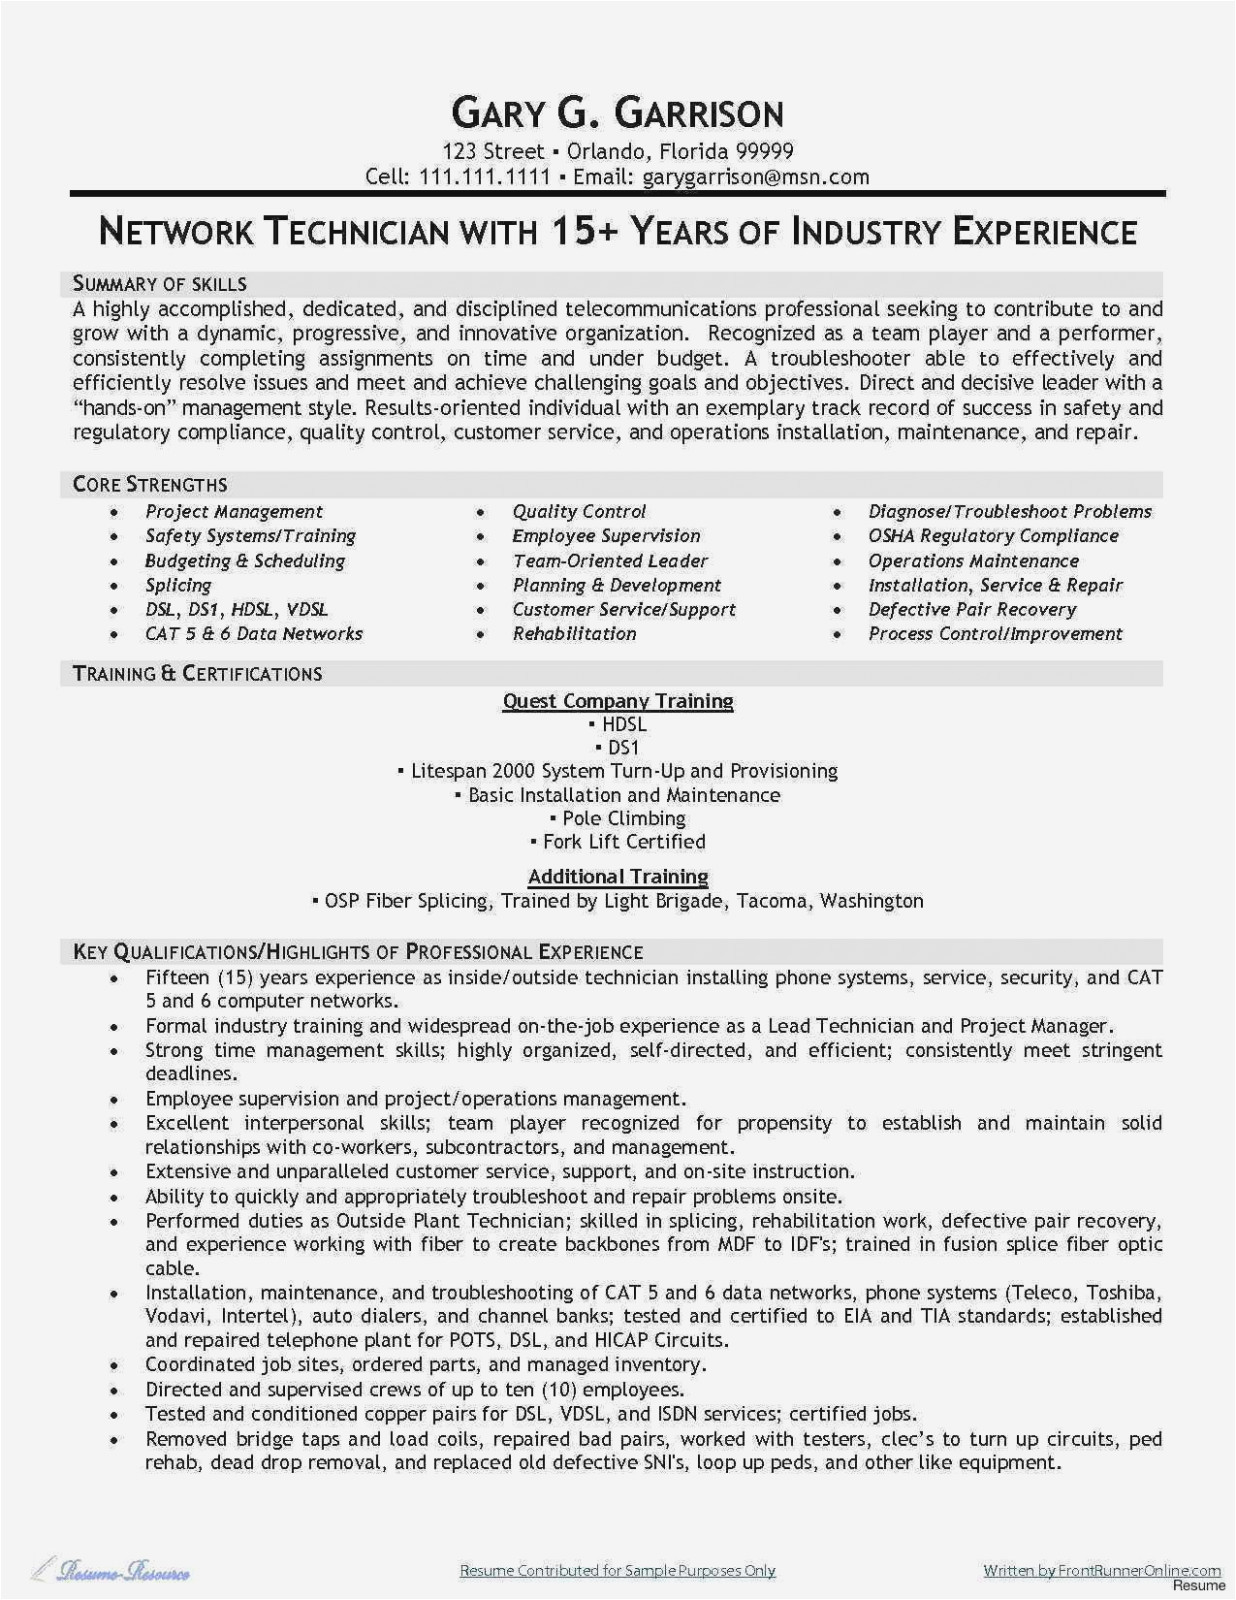 Hardware Engineer Resume 14 Facts that Nobody told Realty Executives Mi Invoice